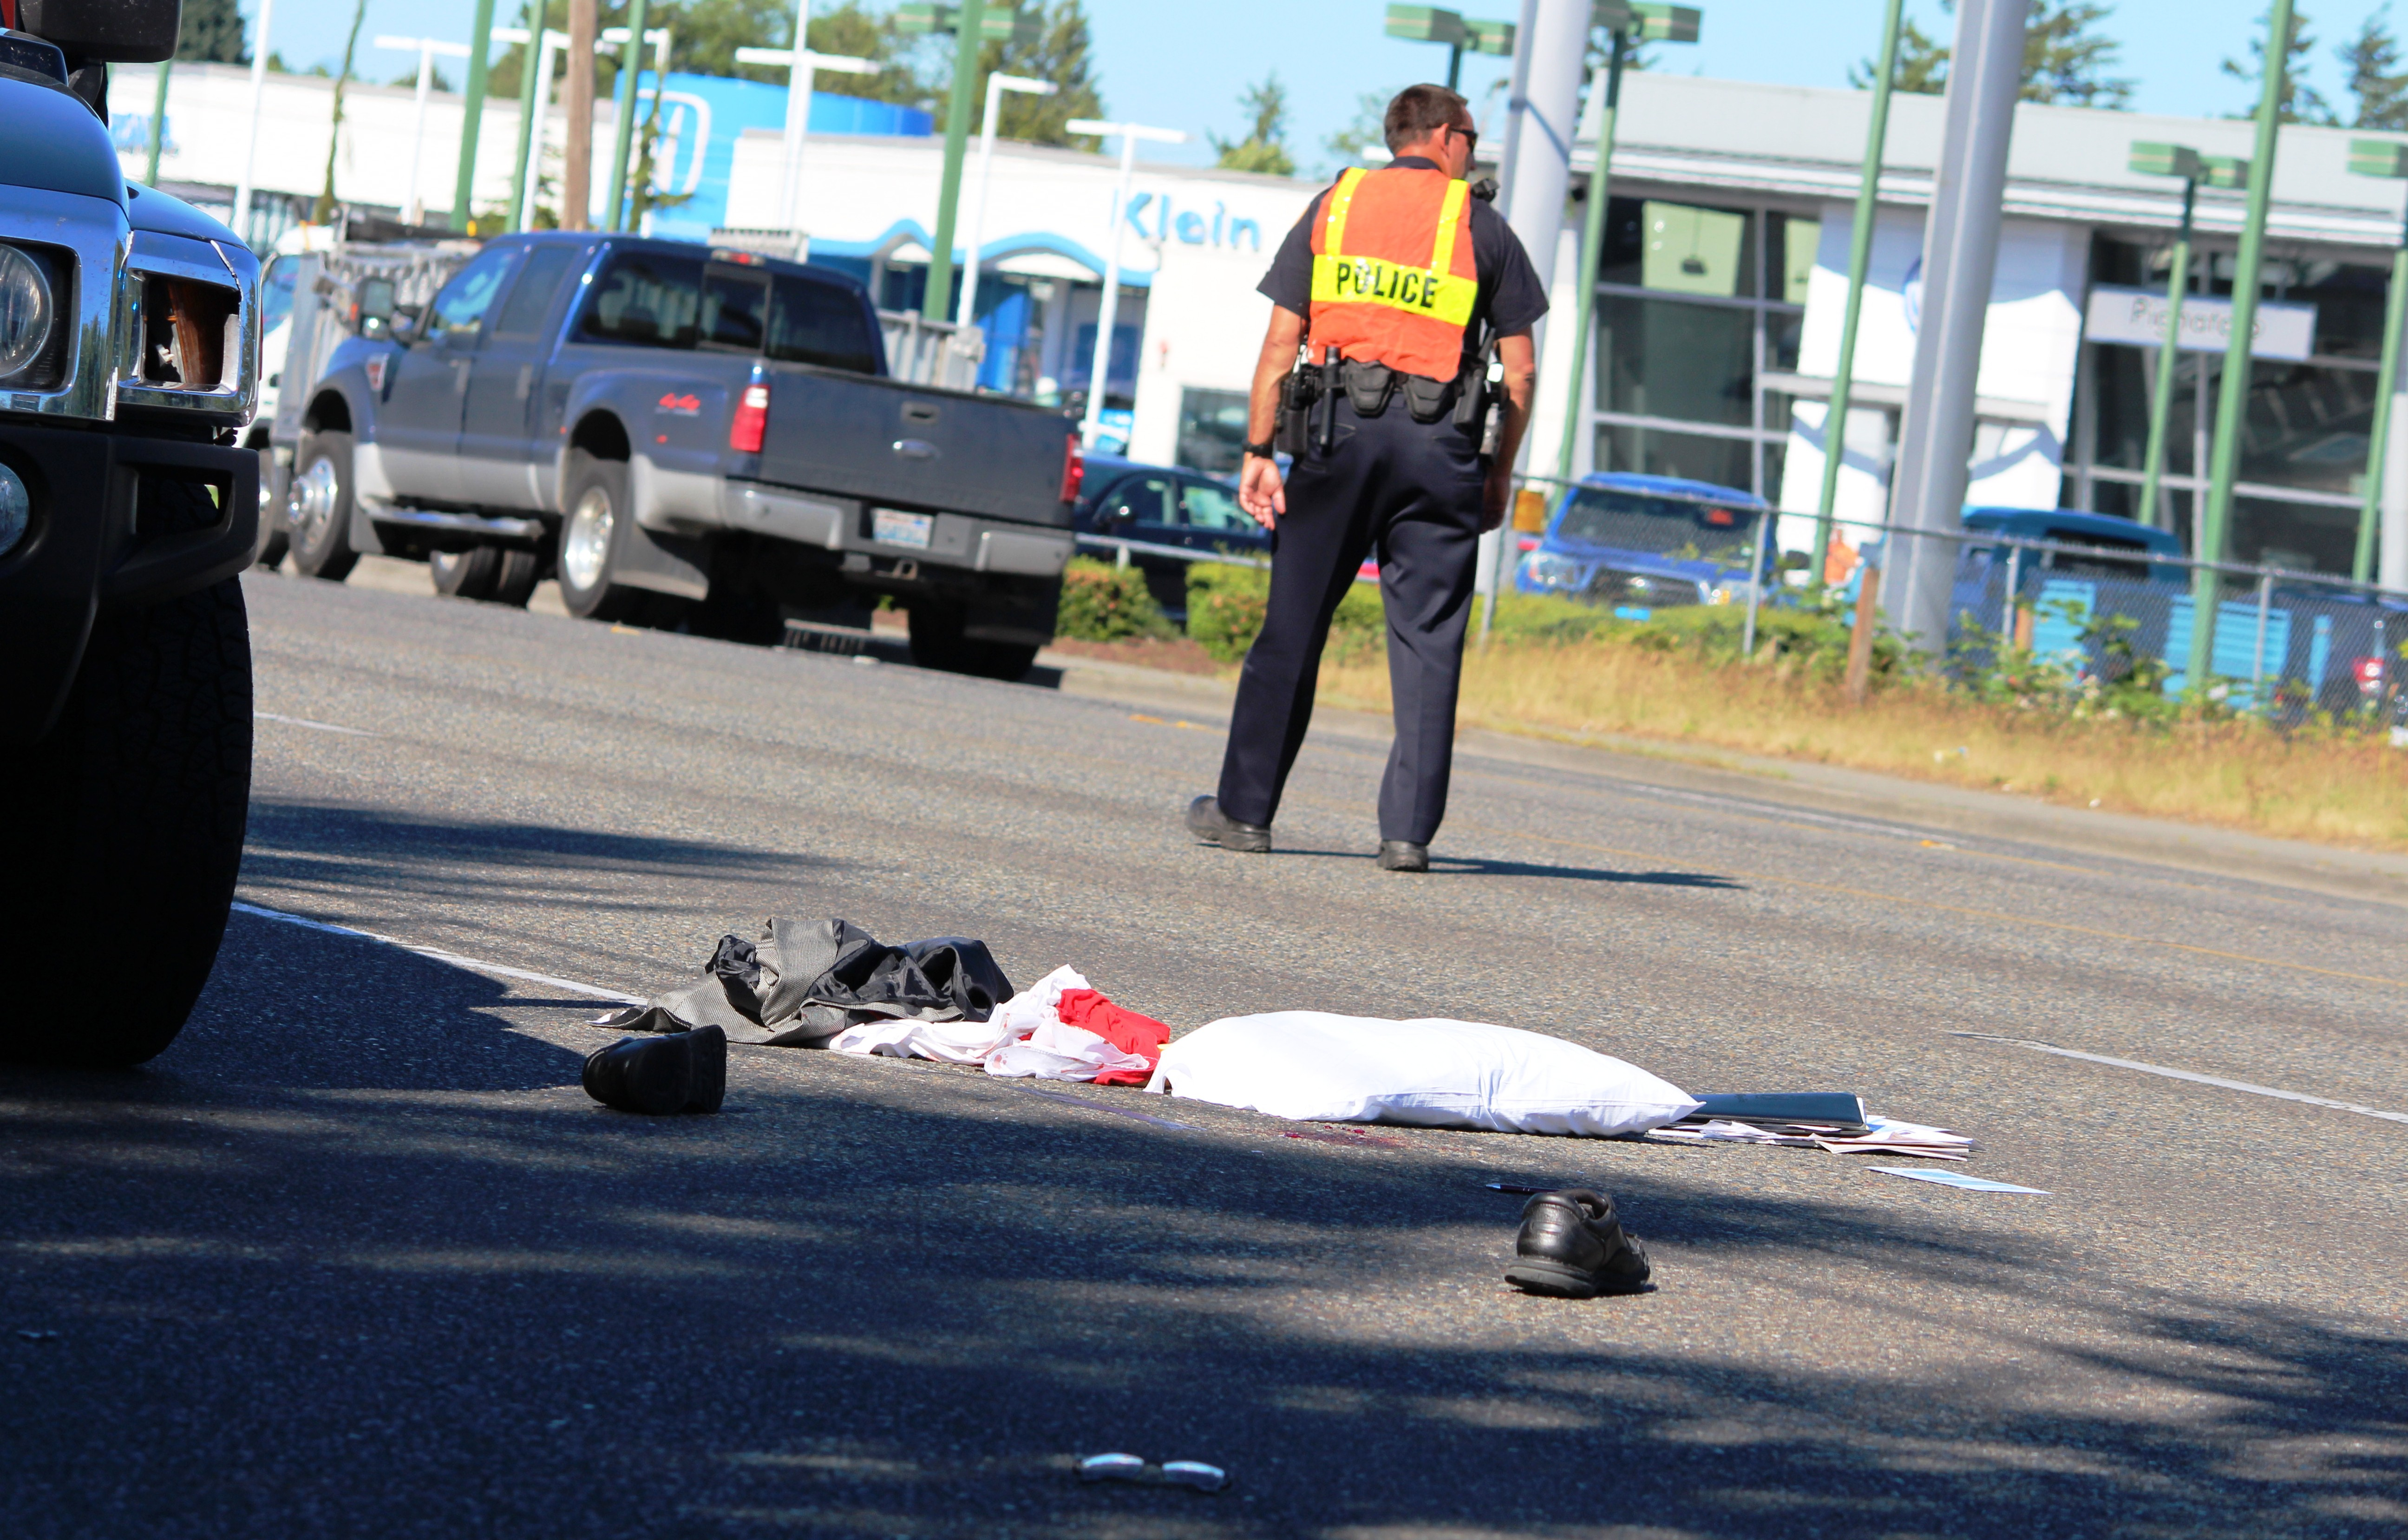 Serious Car Pedestrian Accident Slowing Traffic In South